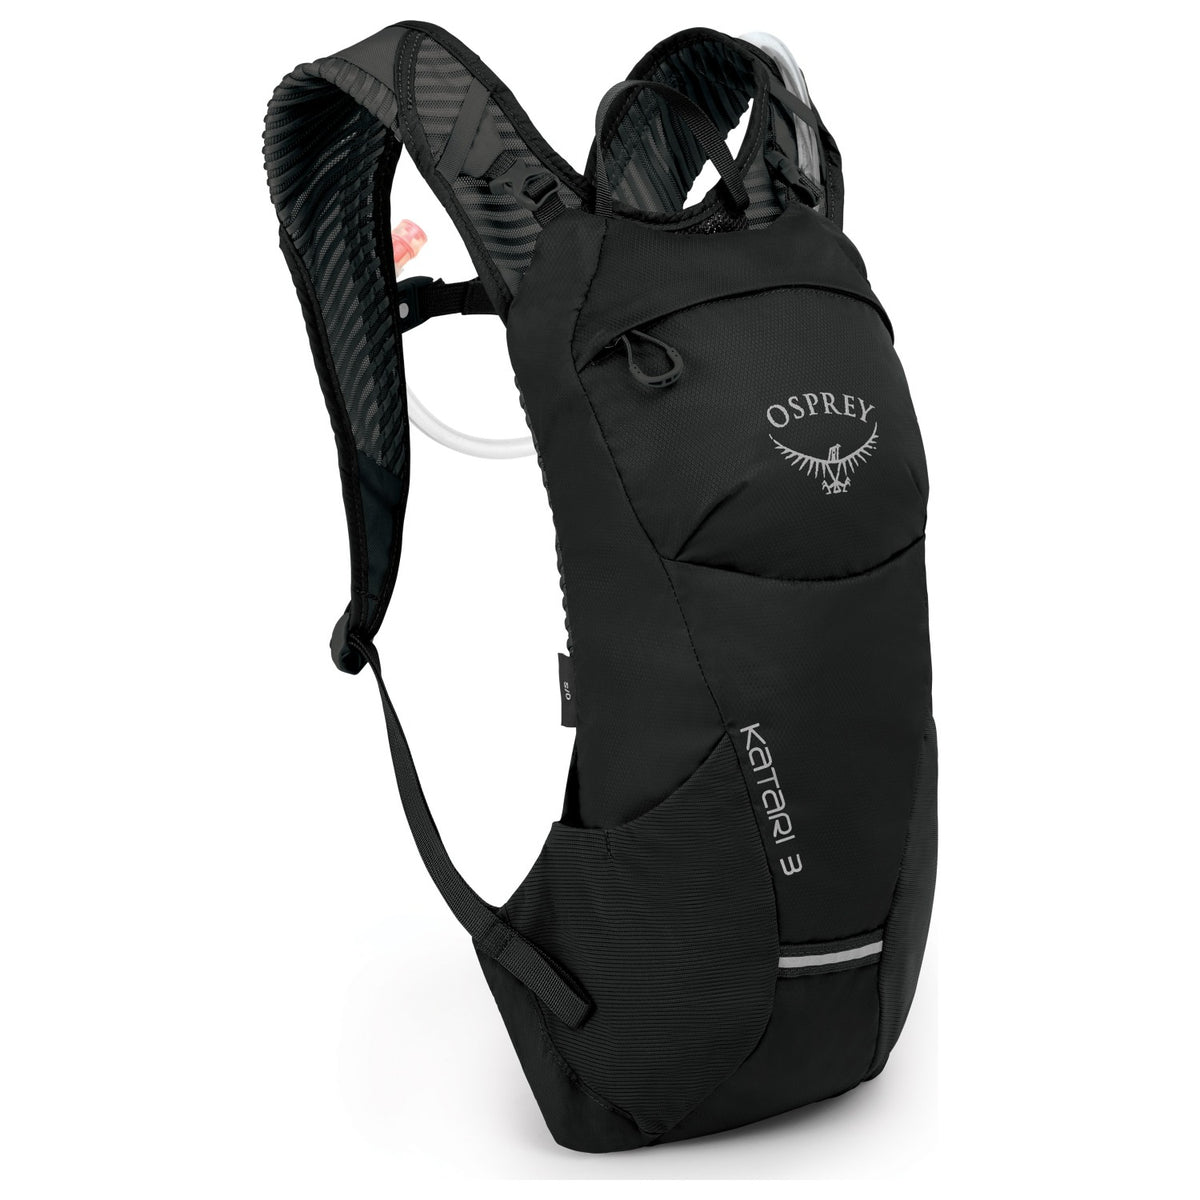 Osprey Men's Katari 3 Hydration Pack